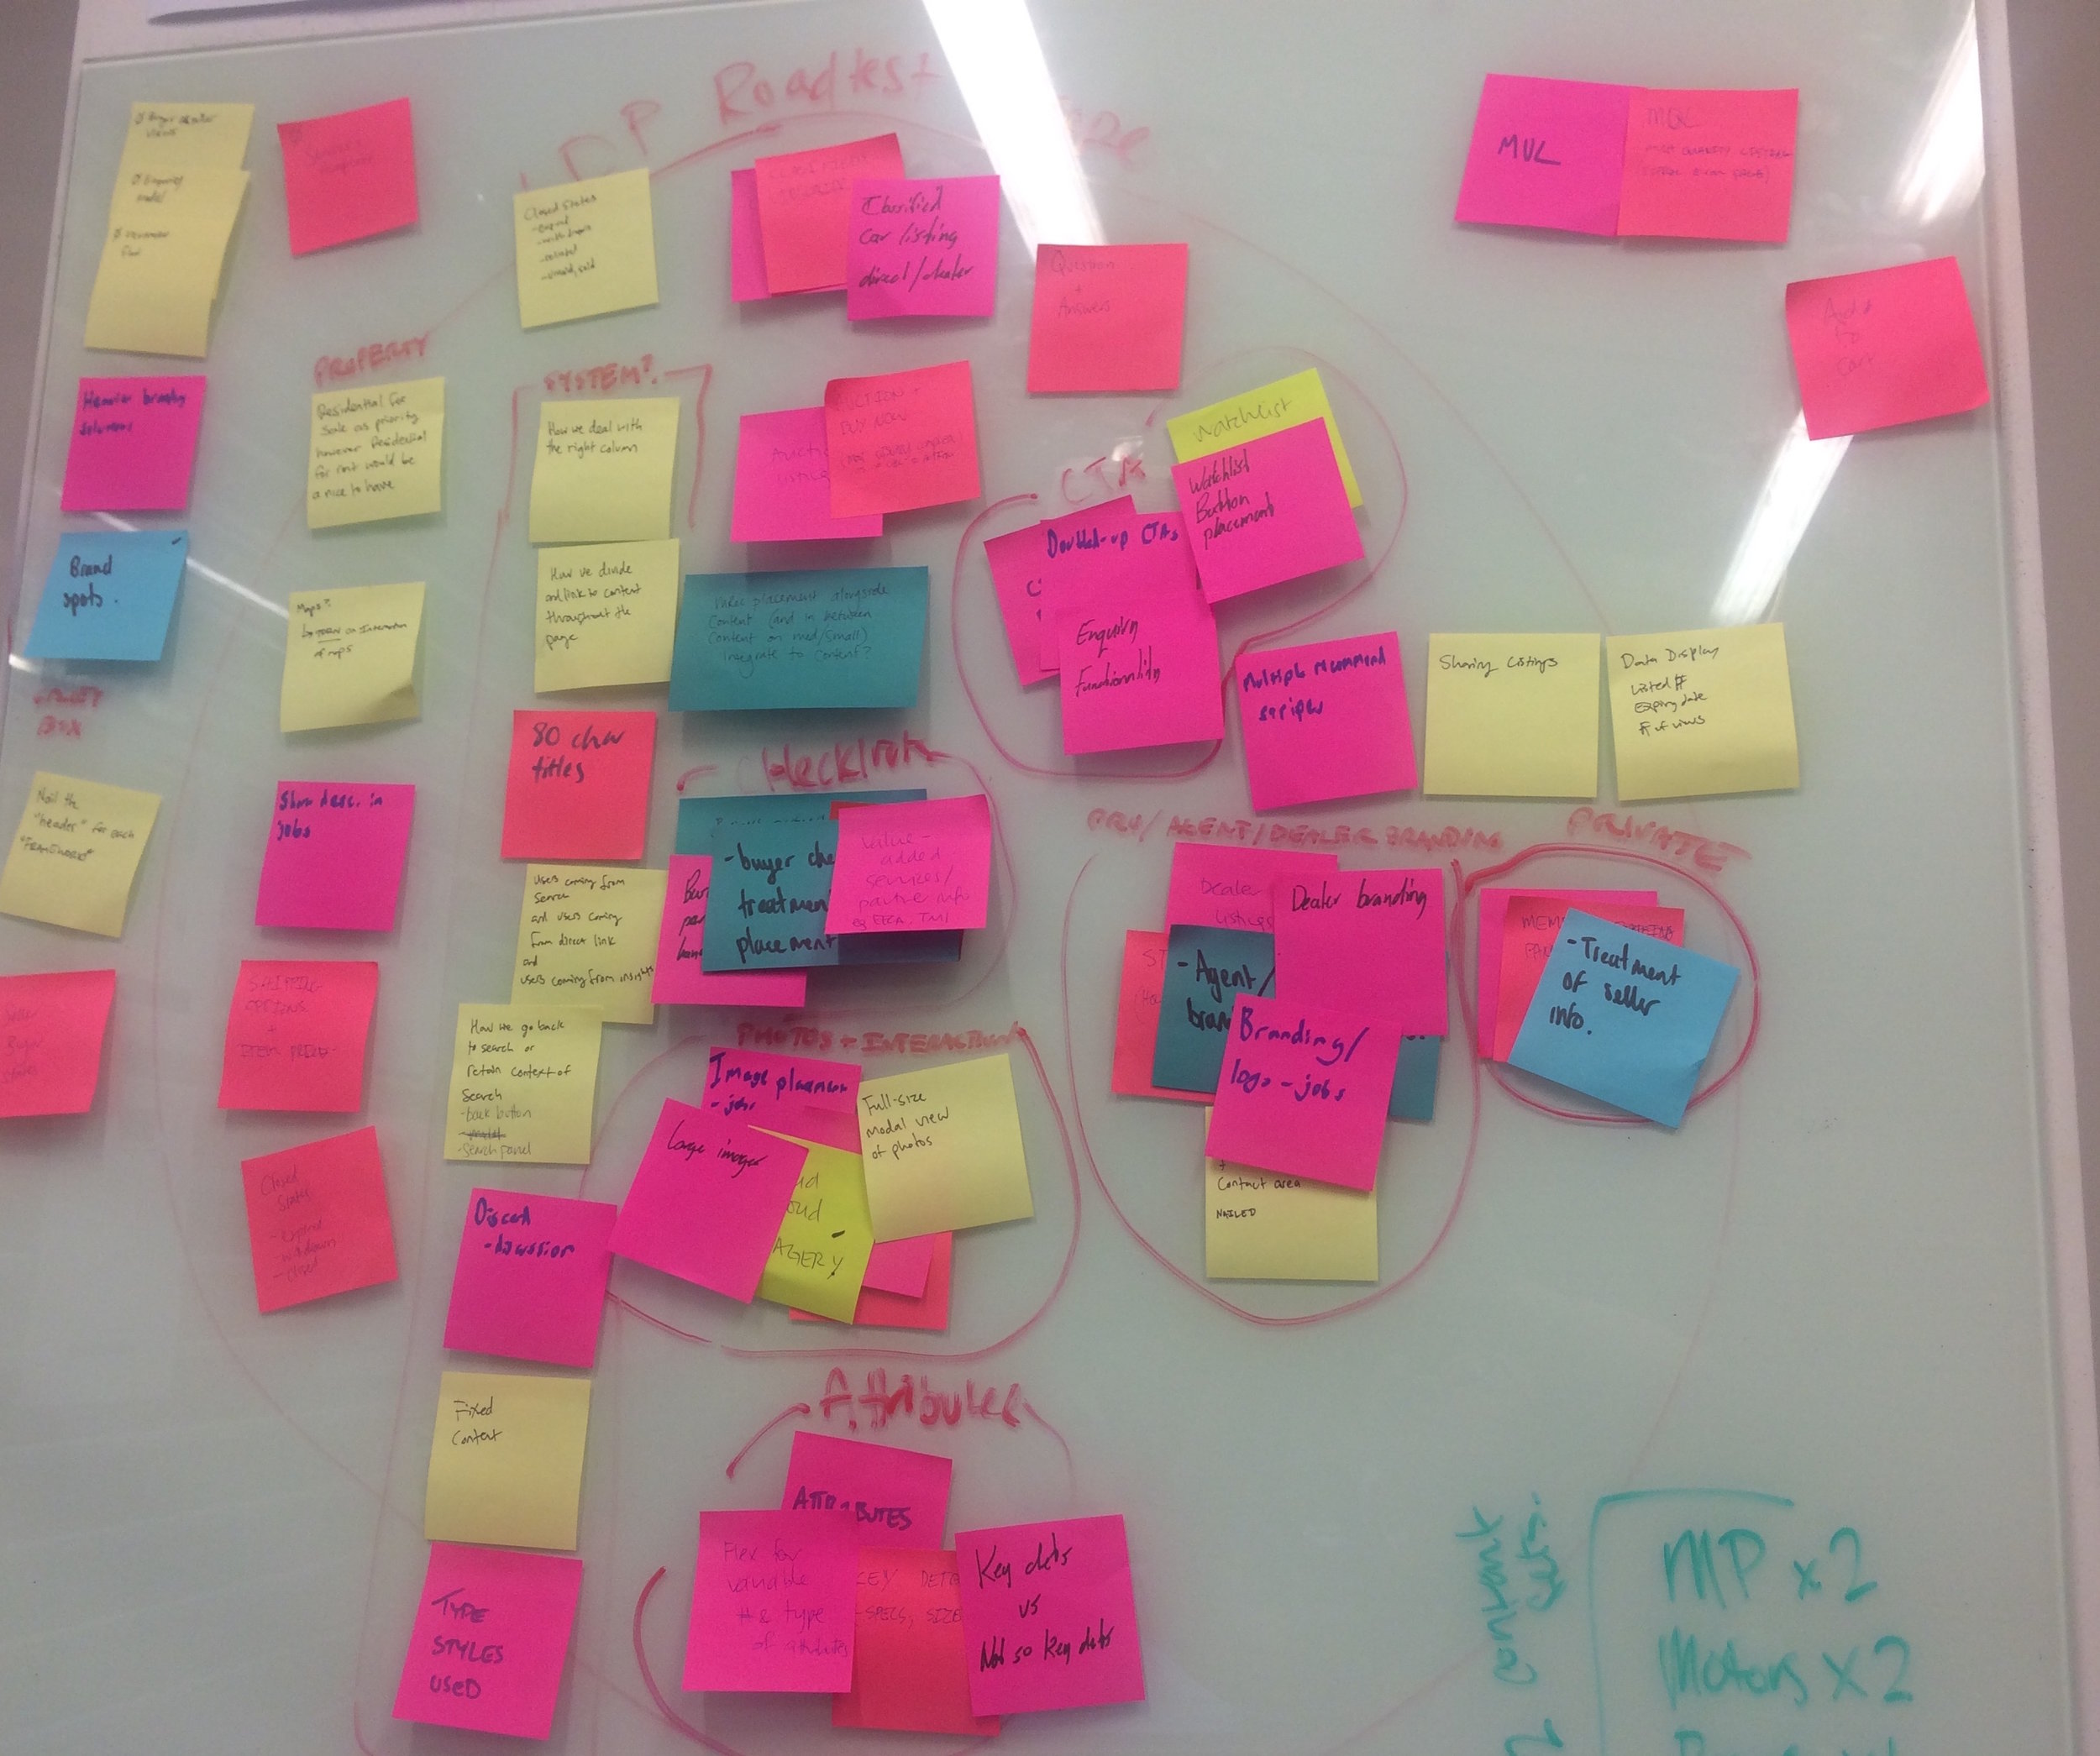 Post-its everywhere!